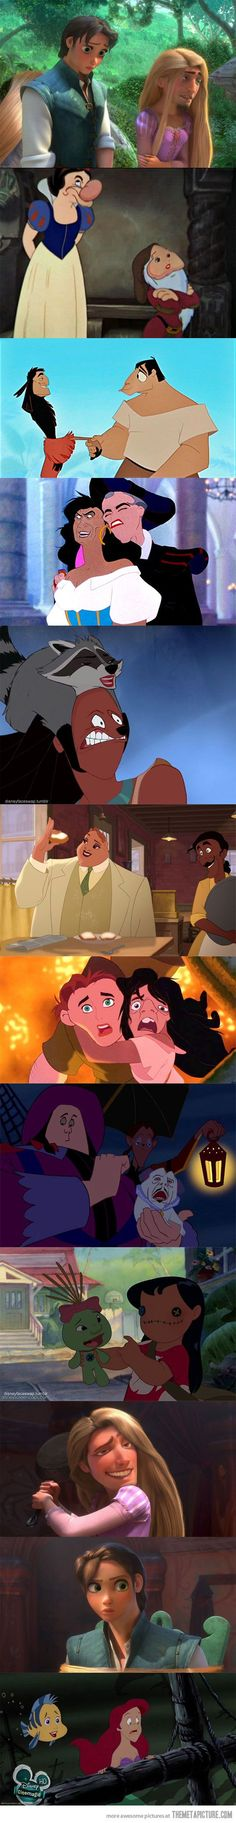 Best of the Funny Disney Swap Faces.